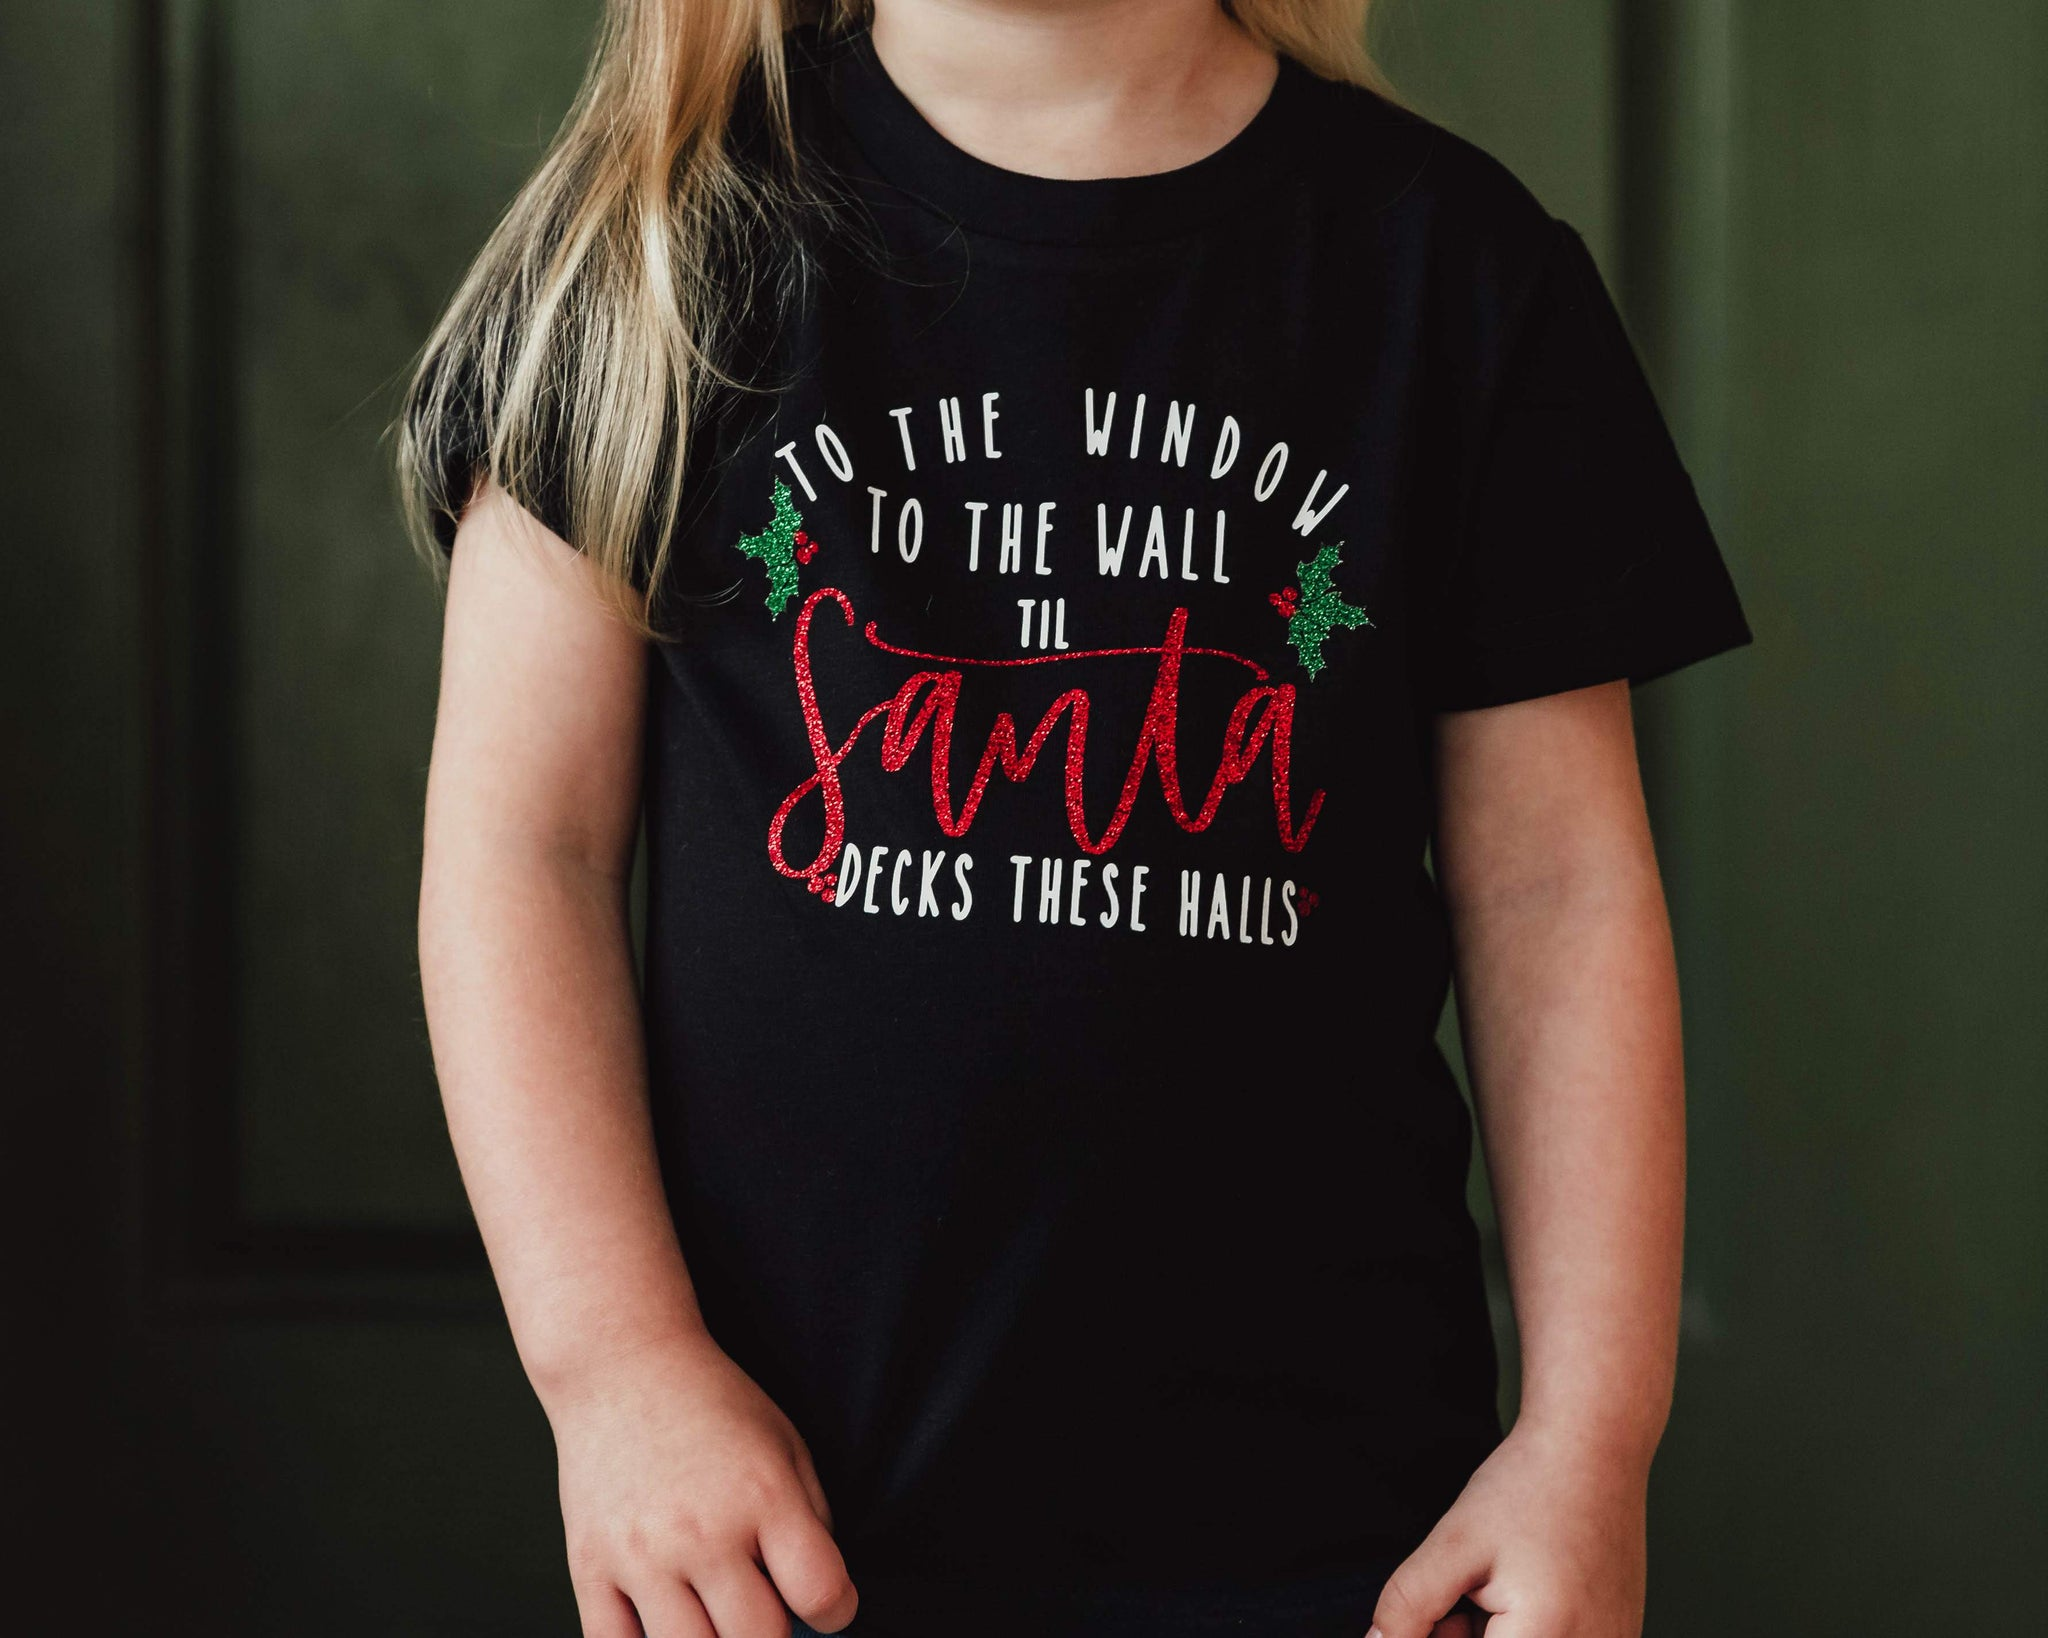 To the Window To the Wall Til Santa Decks These Halls - Toddler/Youth T-Shirt